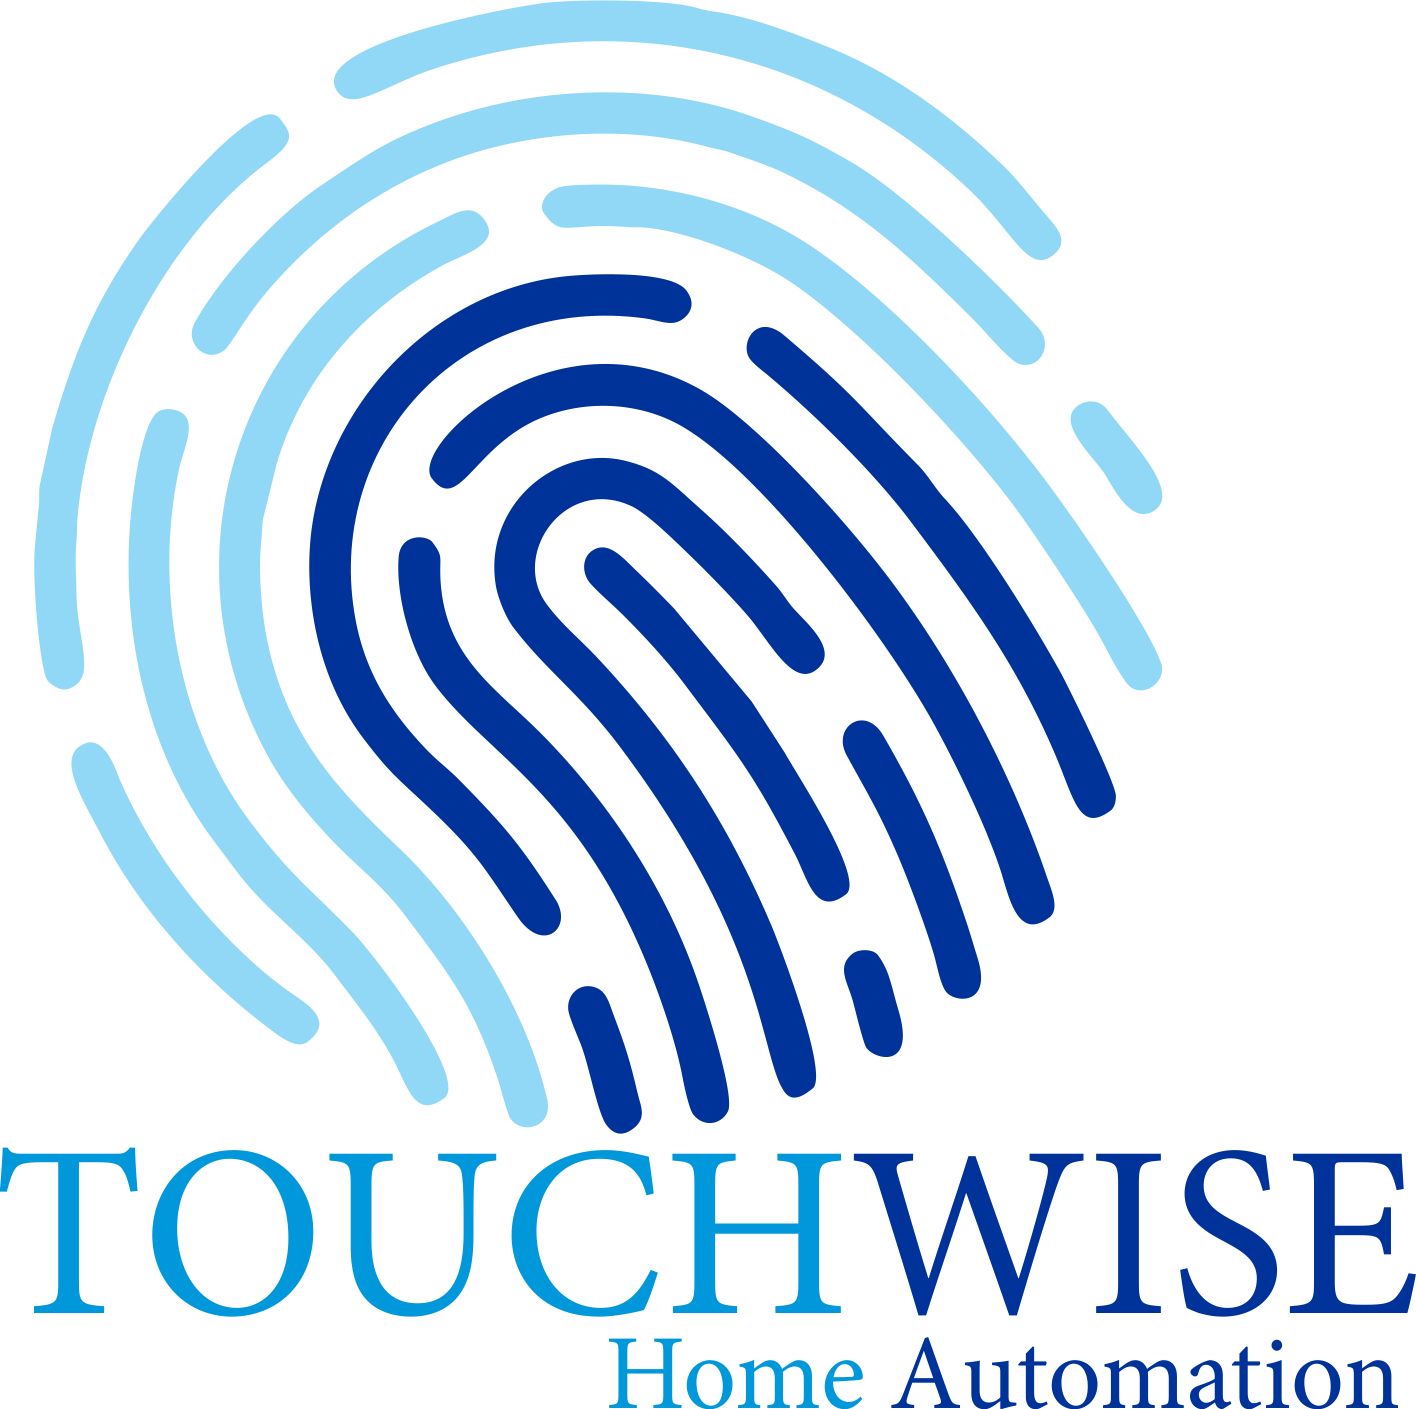 Touchwise_new Logo_No Background_rev4